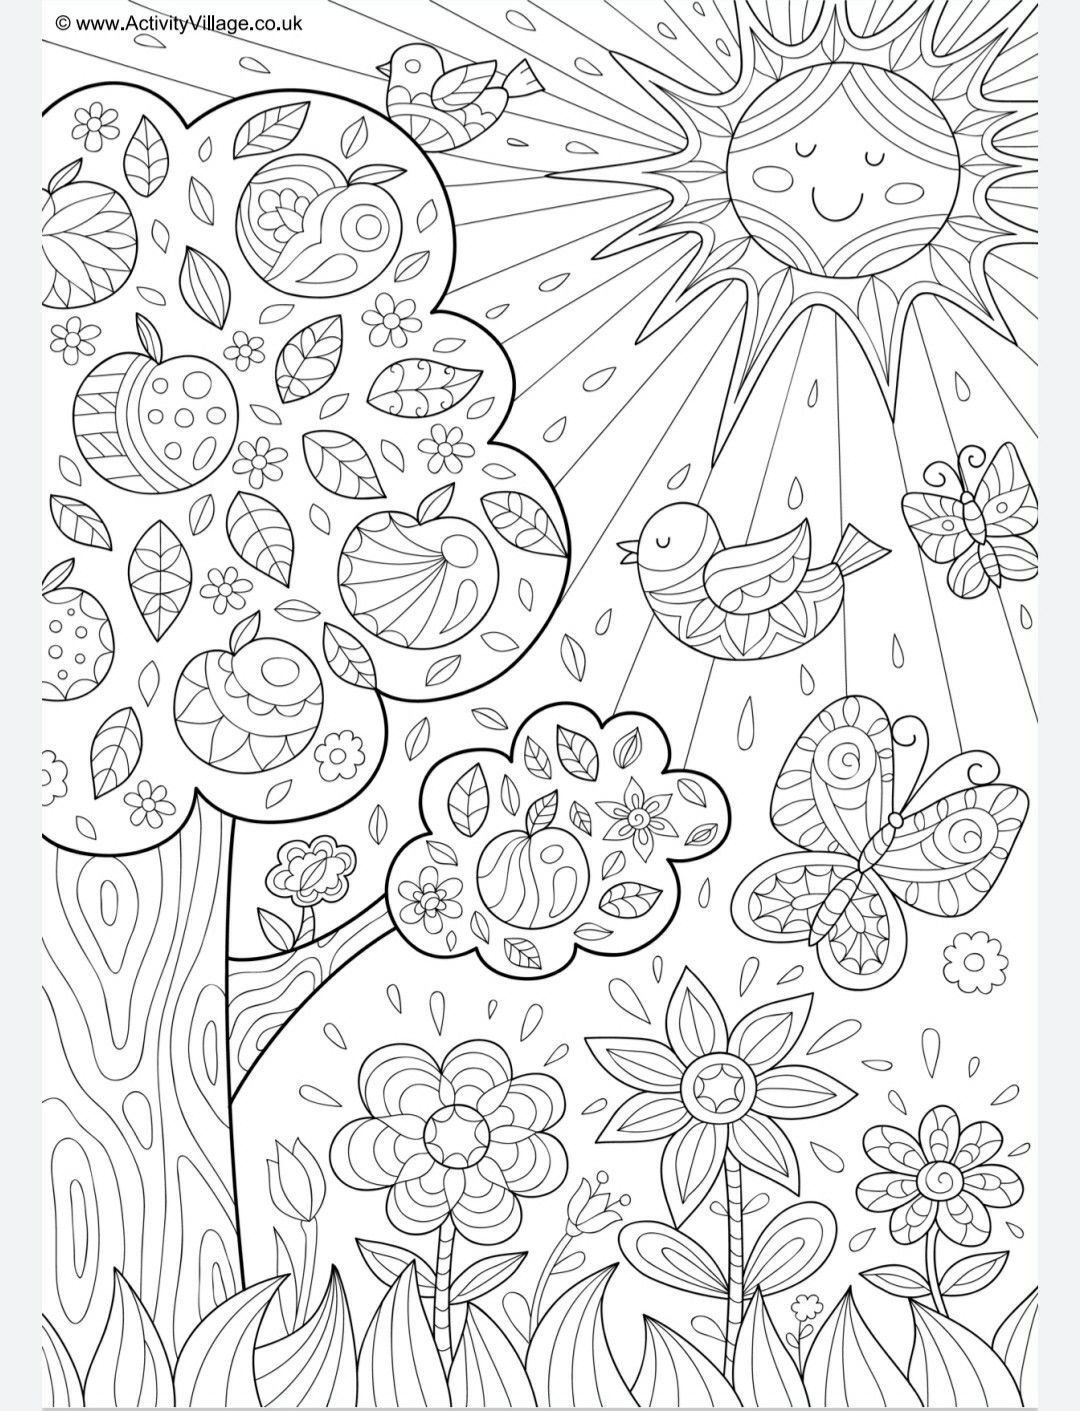 Pin By Bellazeng On Kids Coloring Colouring Pages Coloring Pages Doodle Coloring